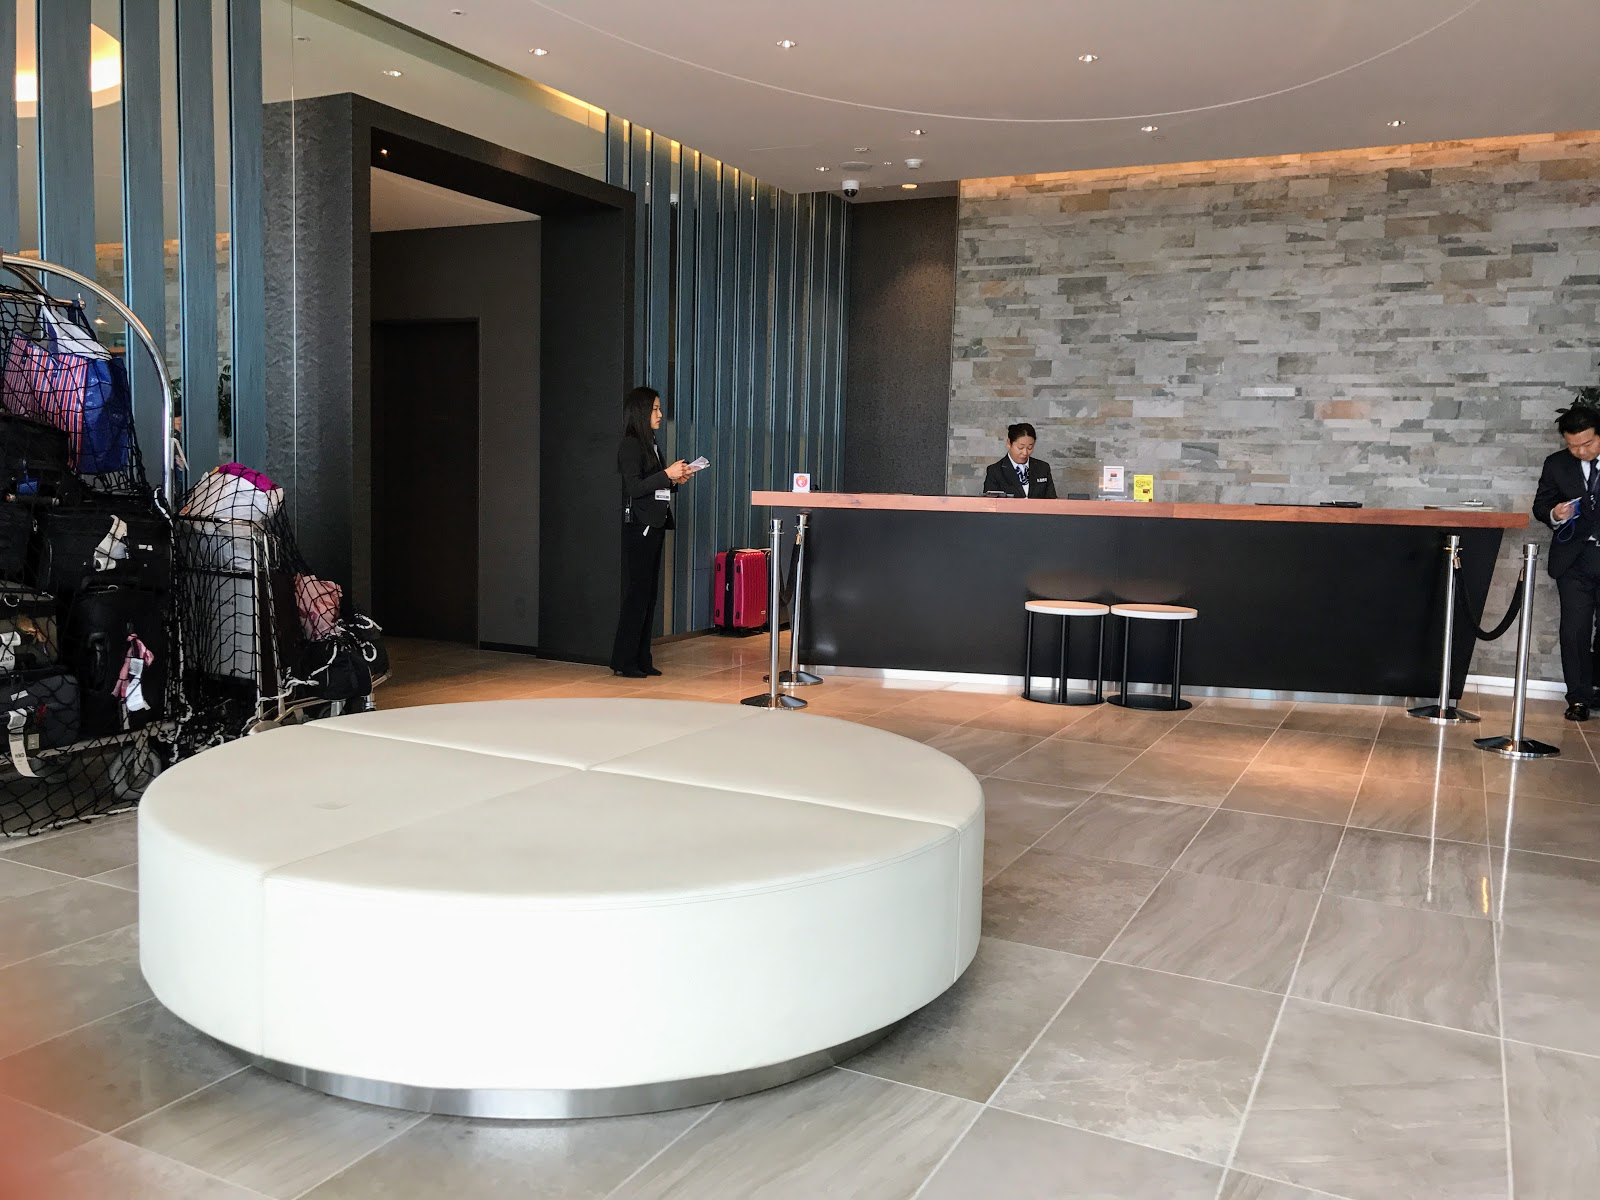 Hotel review futakotamagawa excel hotel tokyu a suburban choice situated on the upper floors of the building futakotamagawa excel hotel tokyu offers a stunning view of the river and as there are no tall buildings in the doublecrazyfo Image collections